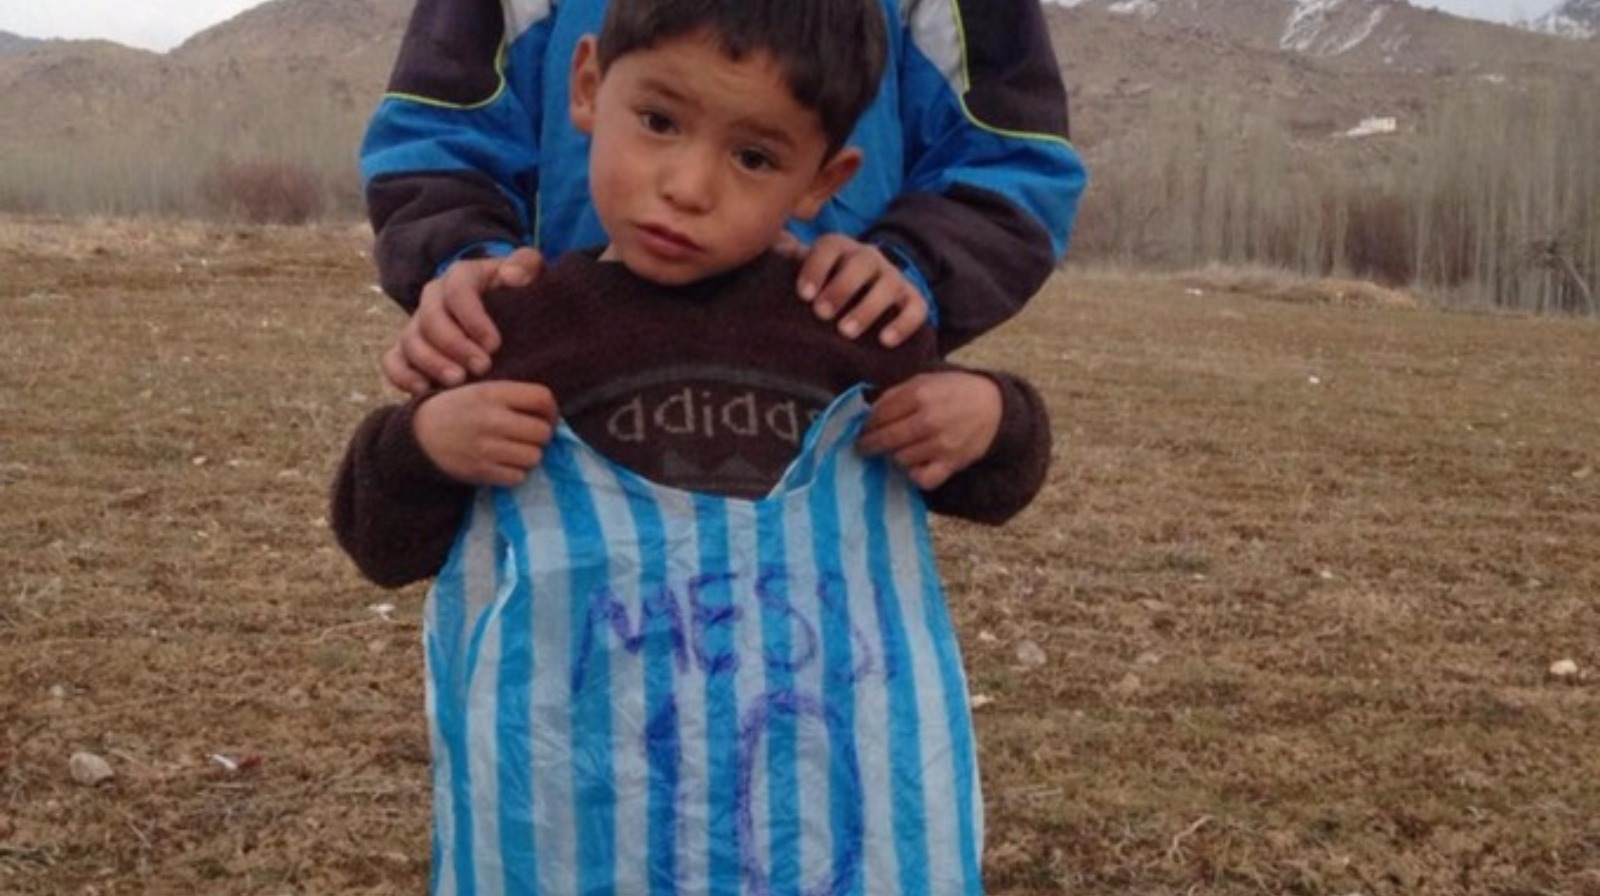 Afghan Boy Who Made Messi Jersey Out of Plastic Bag Gets Two Signed Jerseys